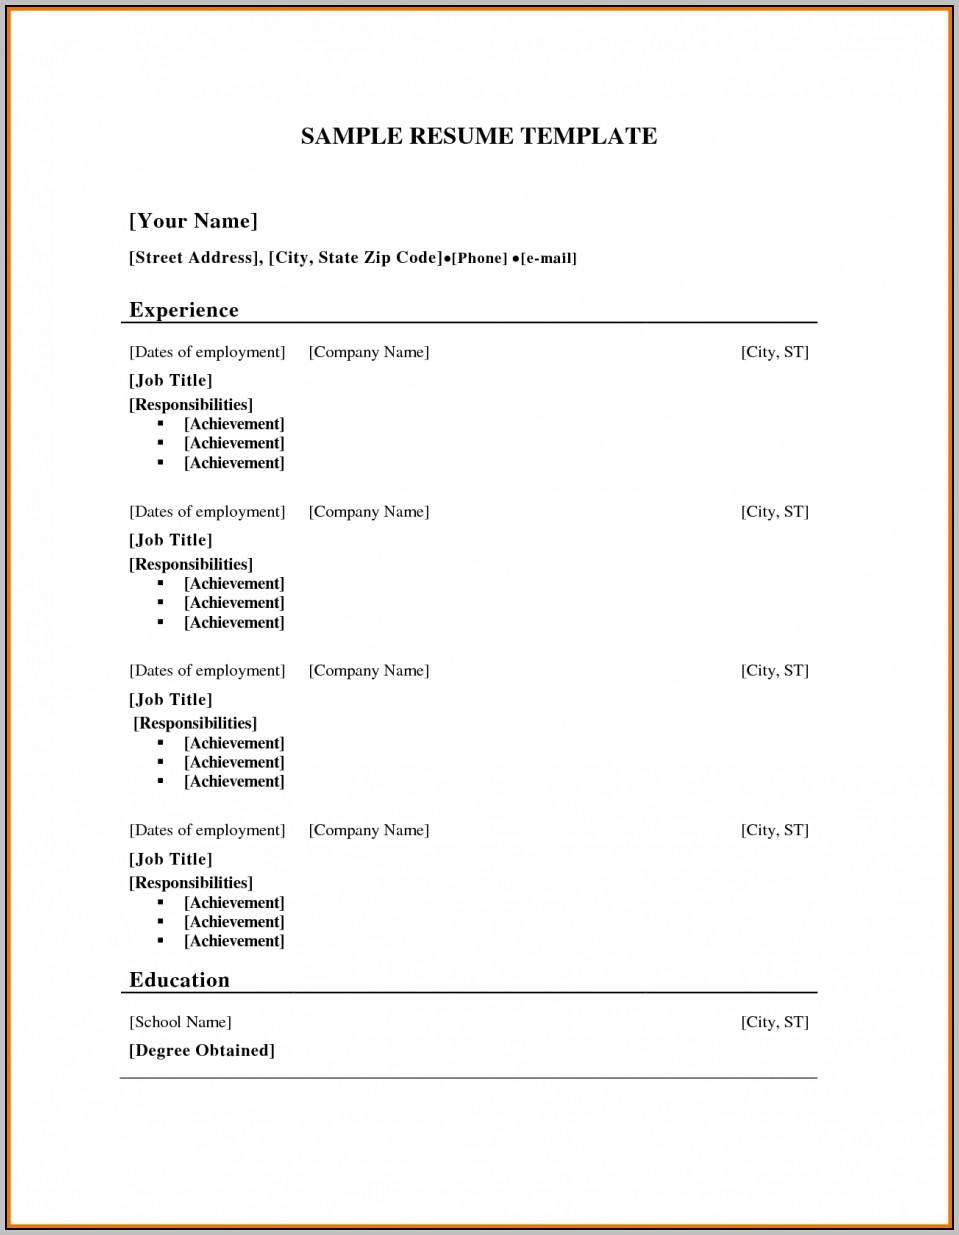 Job Resume Sample Free Templates For Resumes Wordpad Resume With Free Resume Template Download